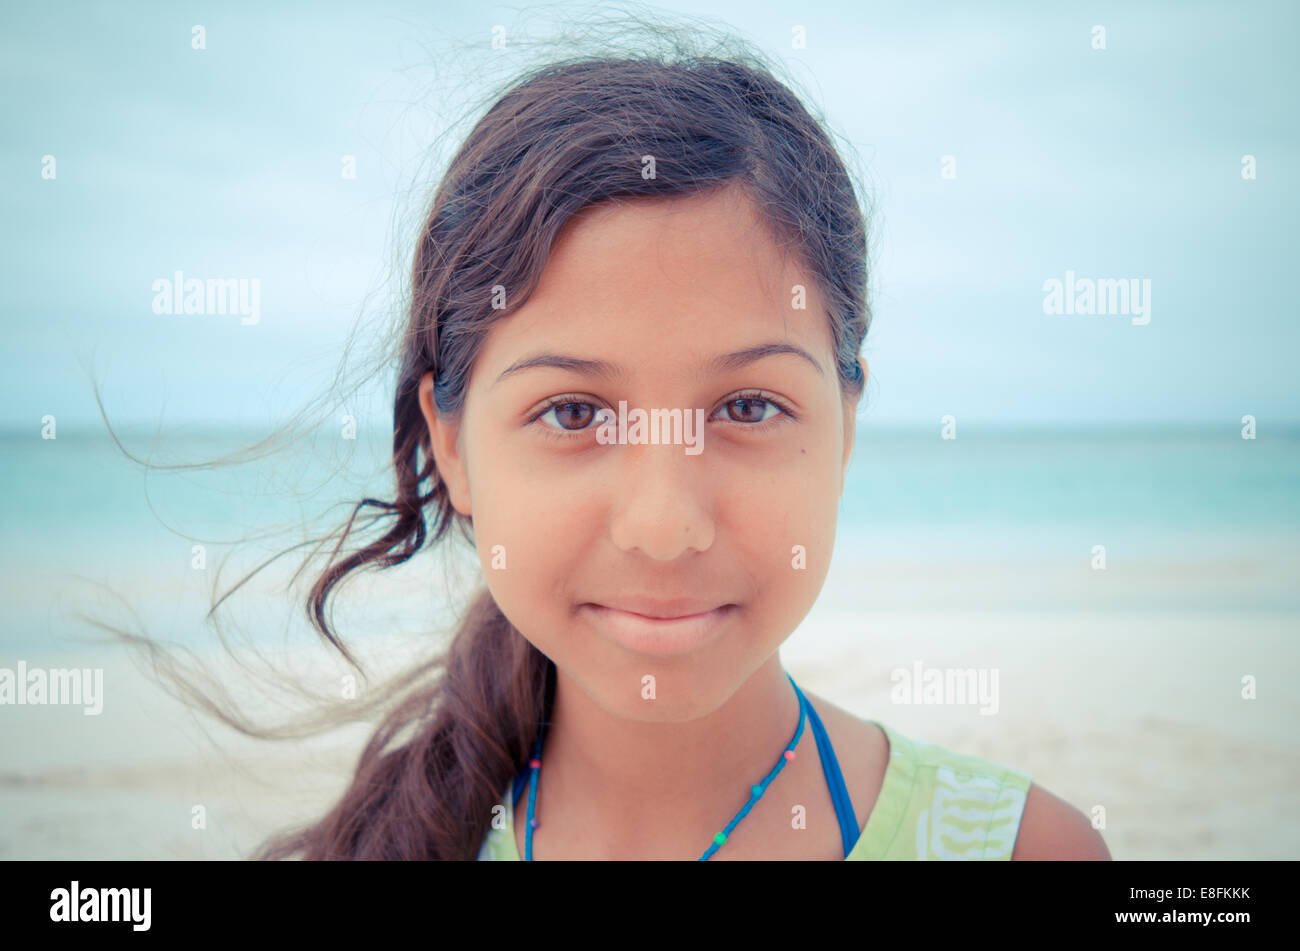 Portrait of a smiling girl standing on a beach, Antigua, Caribbean - Stock Image